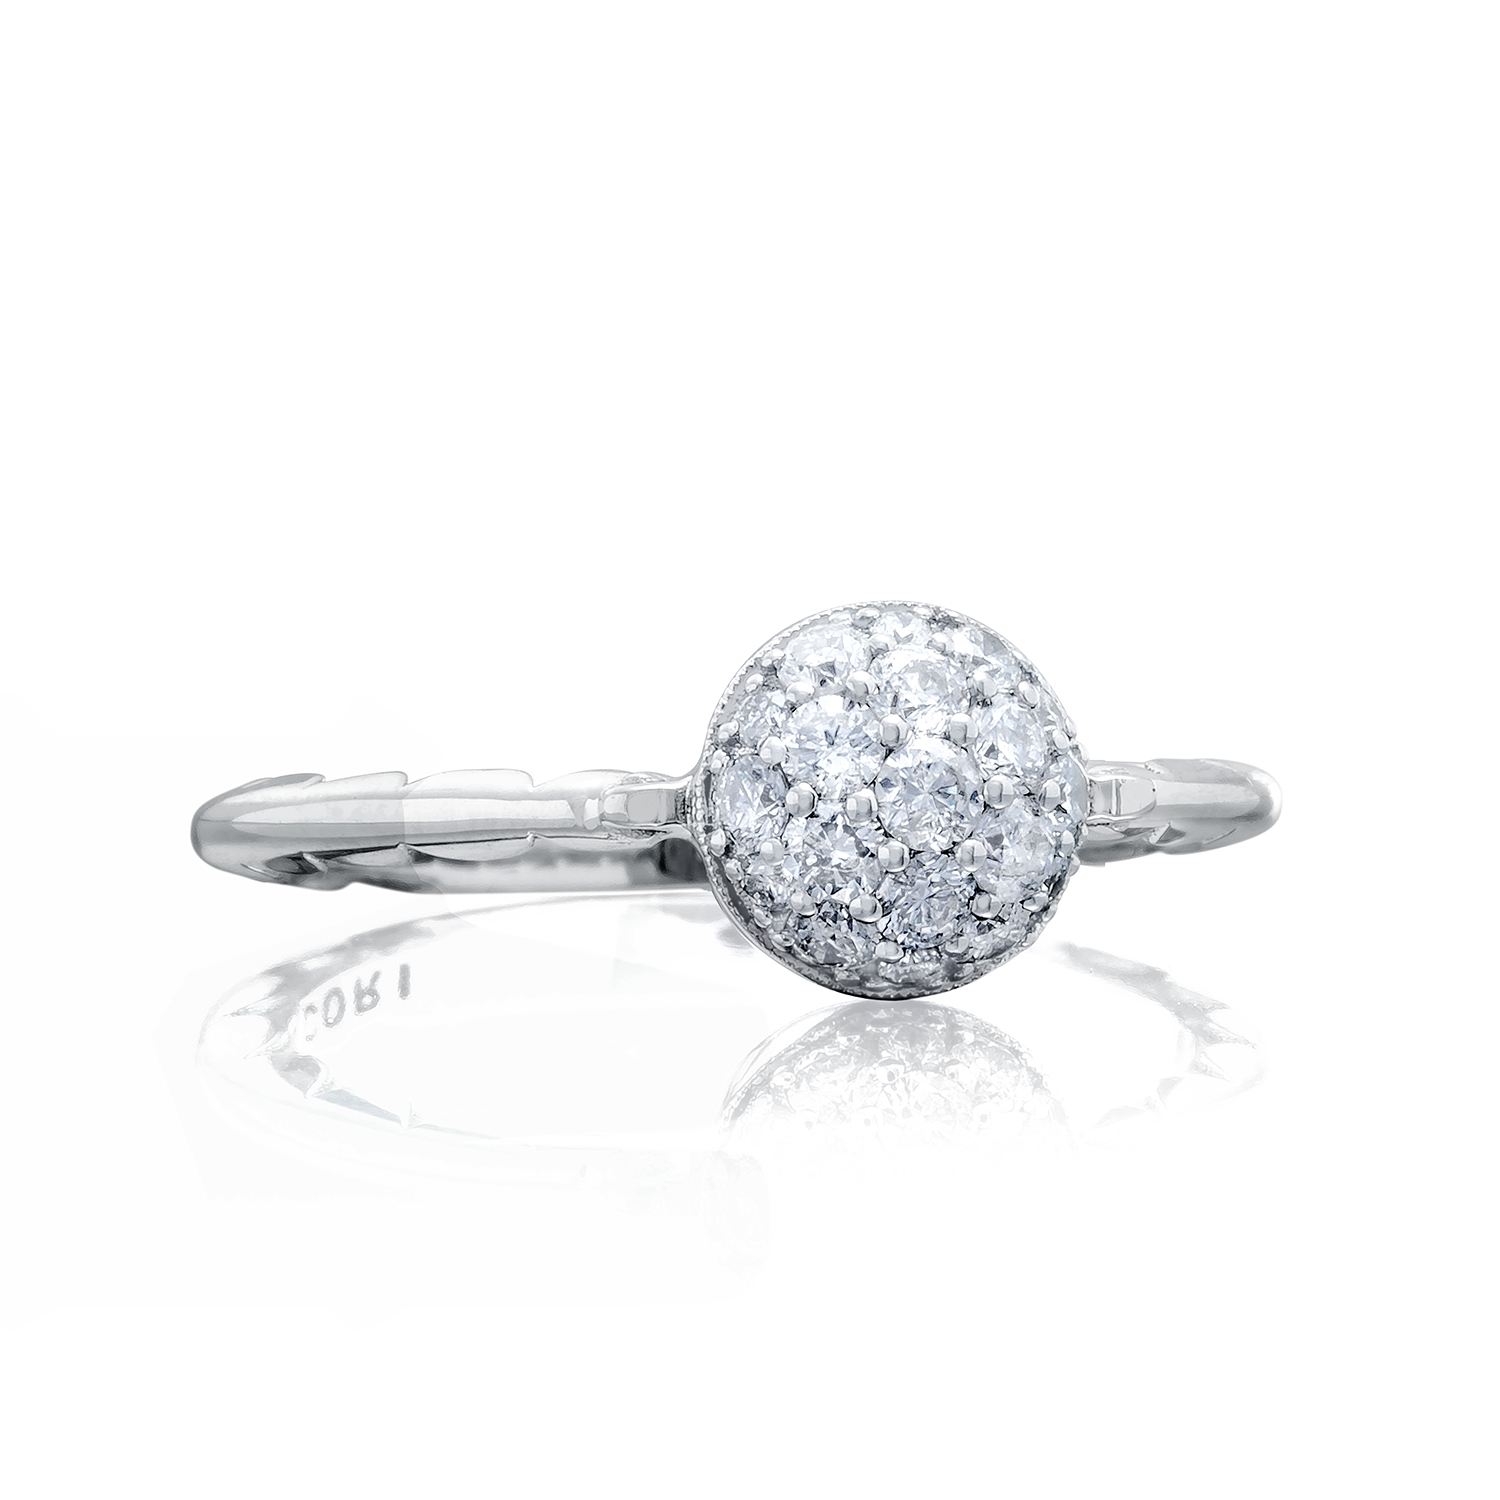 Tacori: Sterling Silver  Sonoma Mist Pave Dew Drop Fashion Ring With 0.40Tw Round Diamonds Ring Size: 7